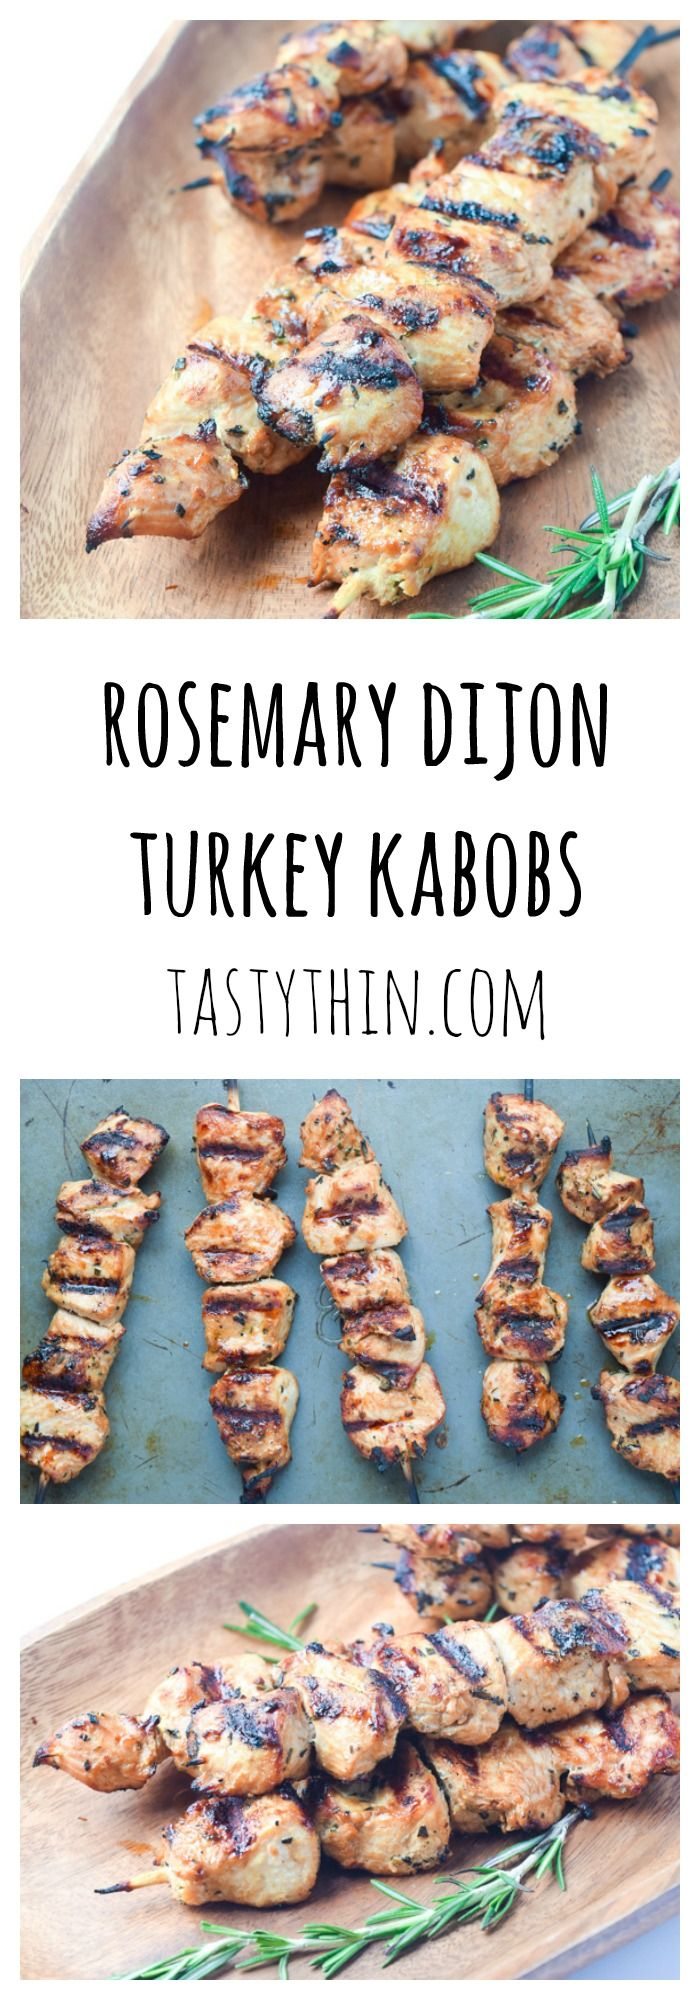 Rosemary Dijon Turkey Kabobs - a fresh tangy marinade is the perfect compliment to these grilled turkey tenderloin kabobs. | tastythin.com